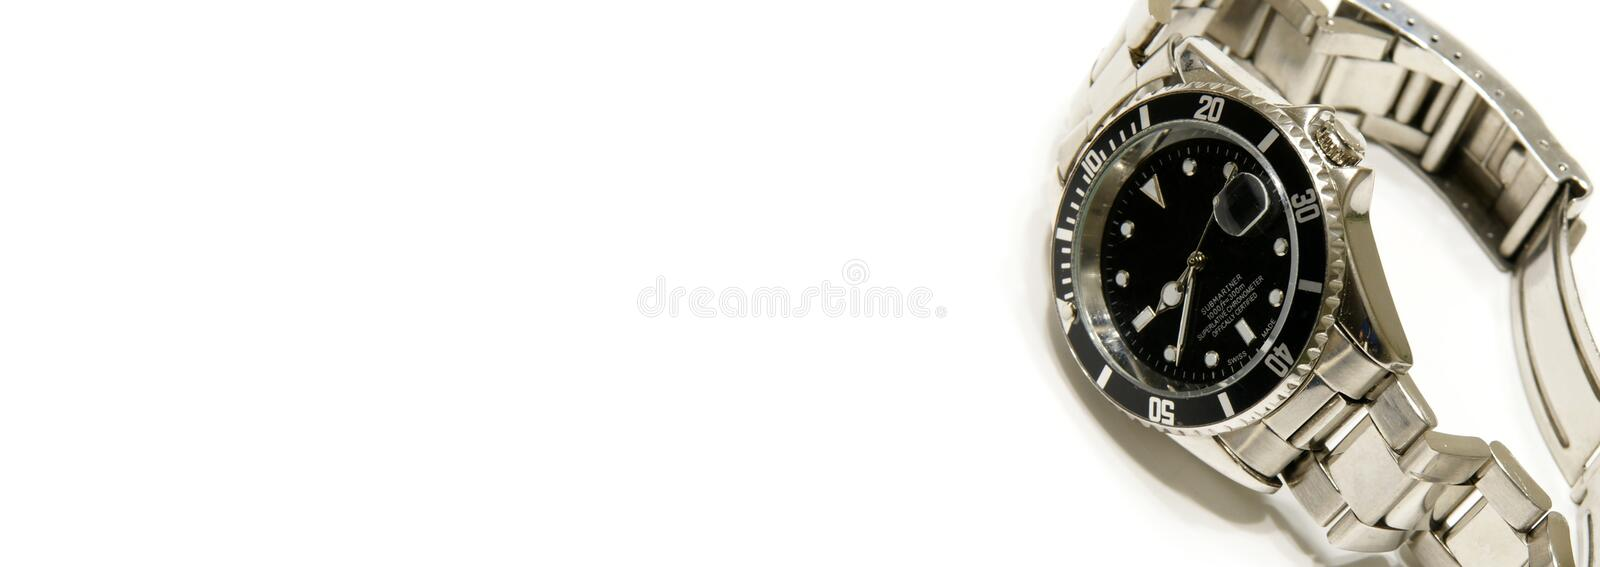 Download Watch Web Banner stock photo. Image of business, inside - 8426842